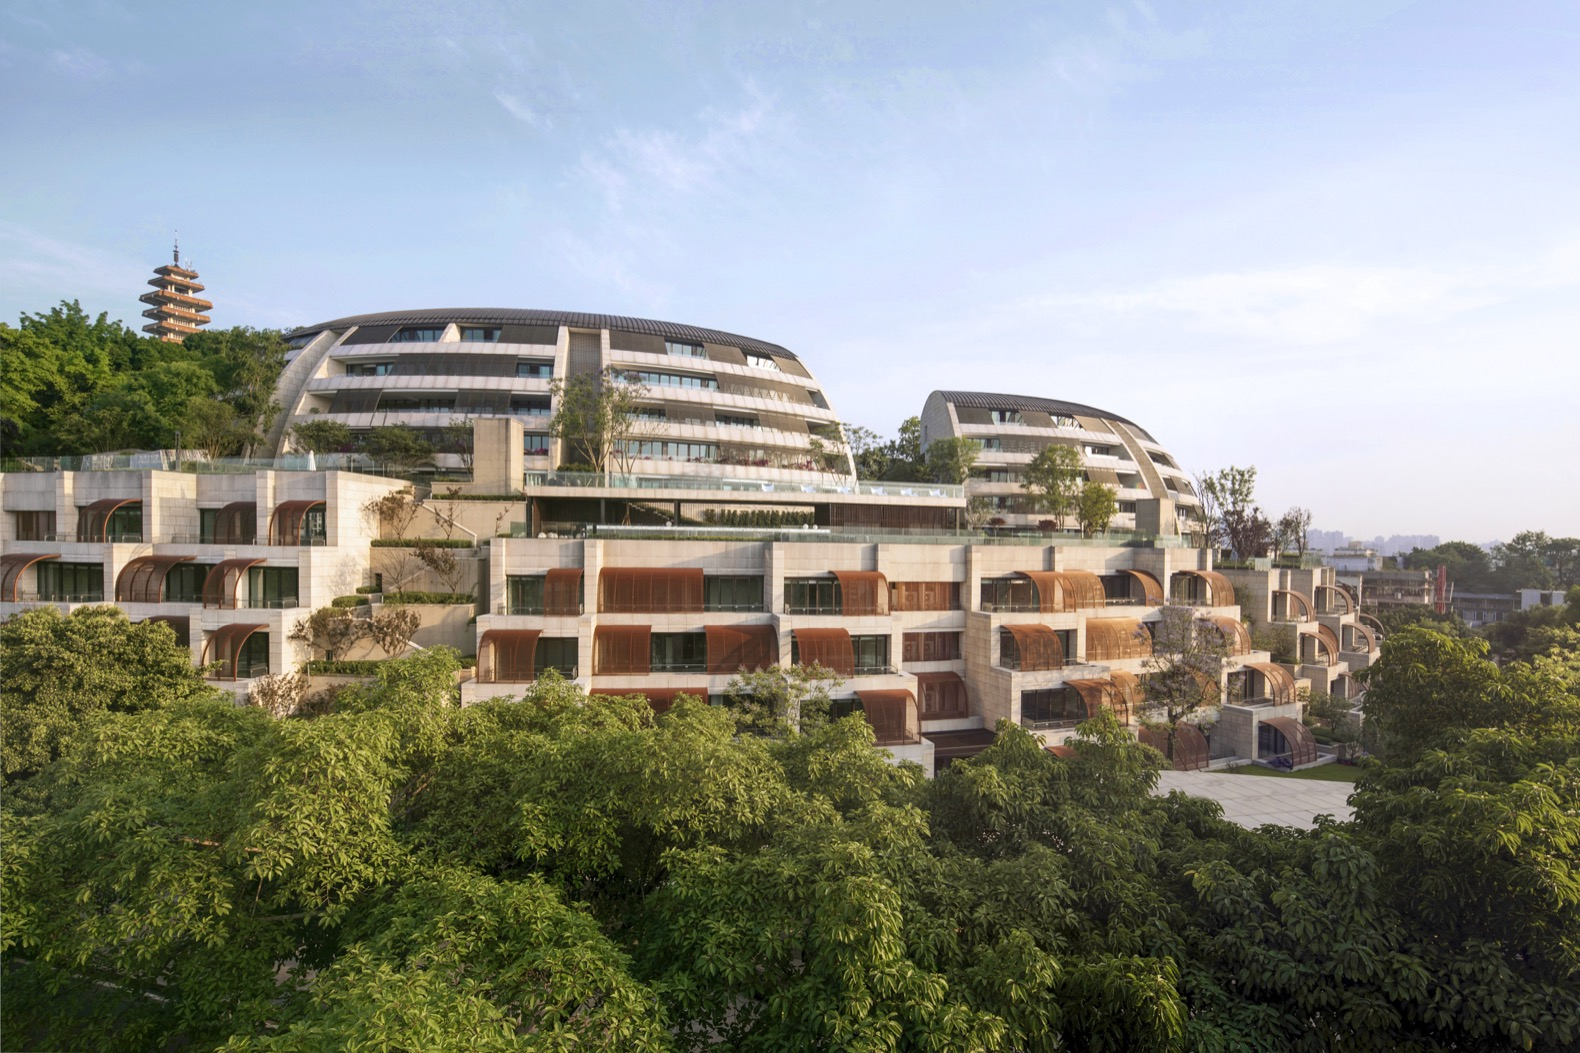 Nature-inspired housing mimics the curvature of the landscape in Chongqing